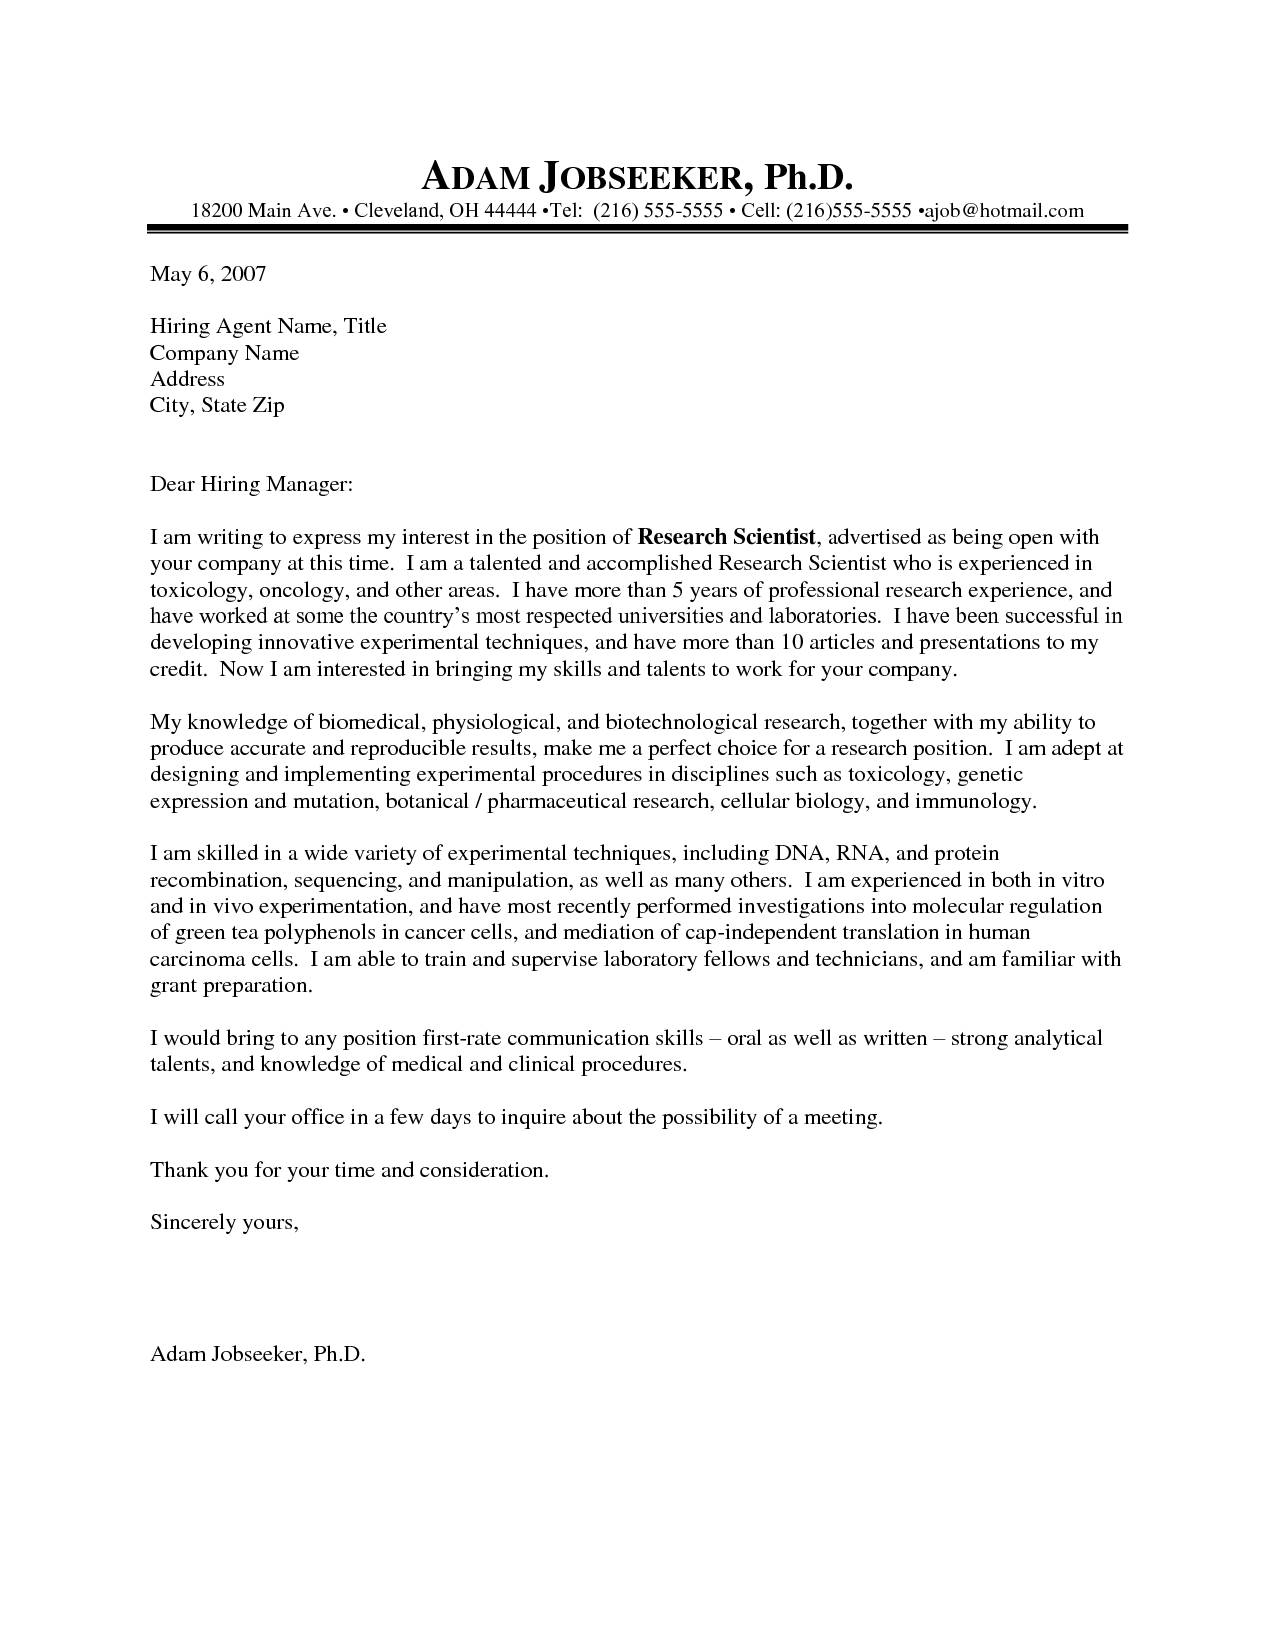 Cover Letter Template Science CoverLetterTemplate